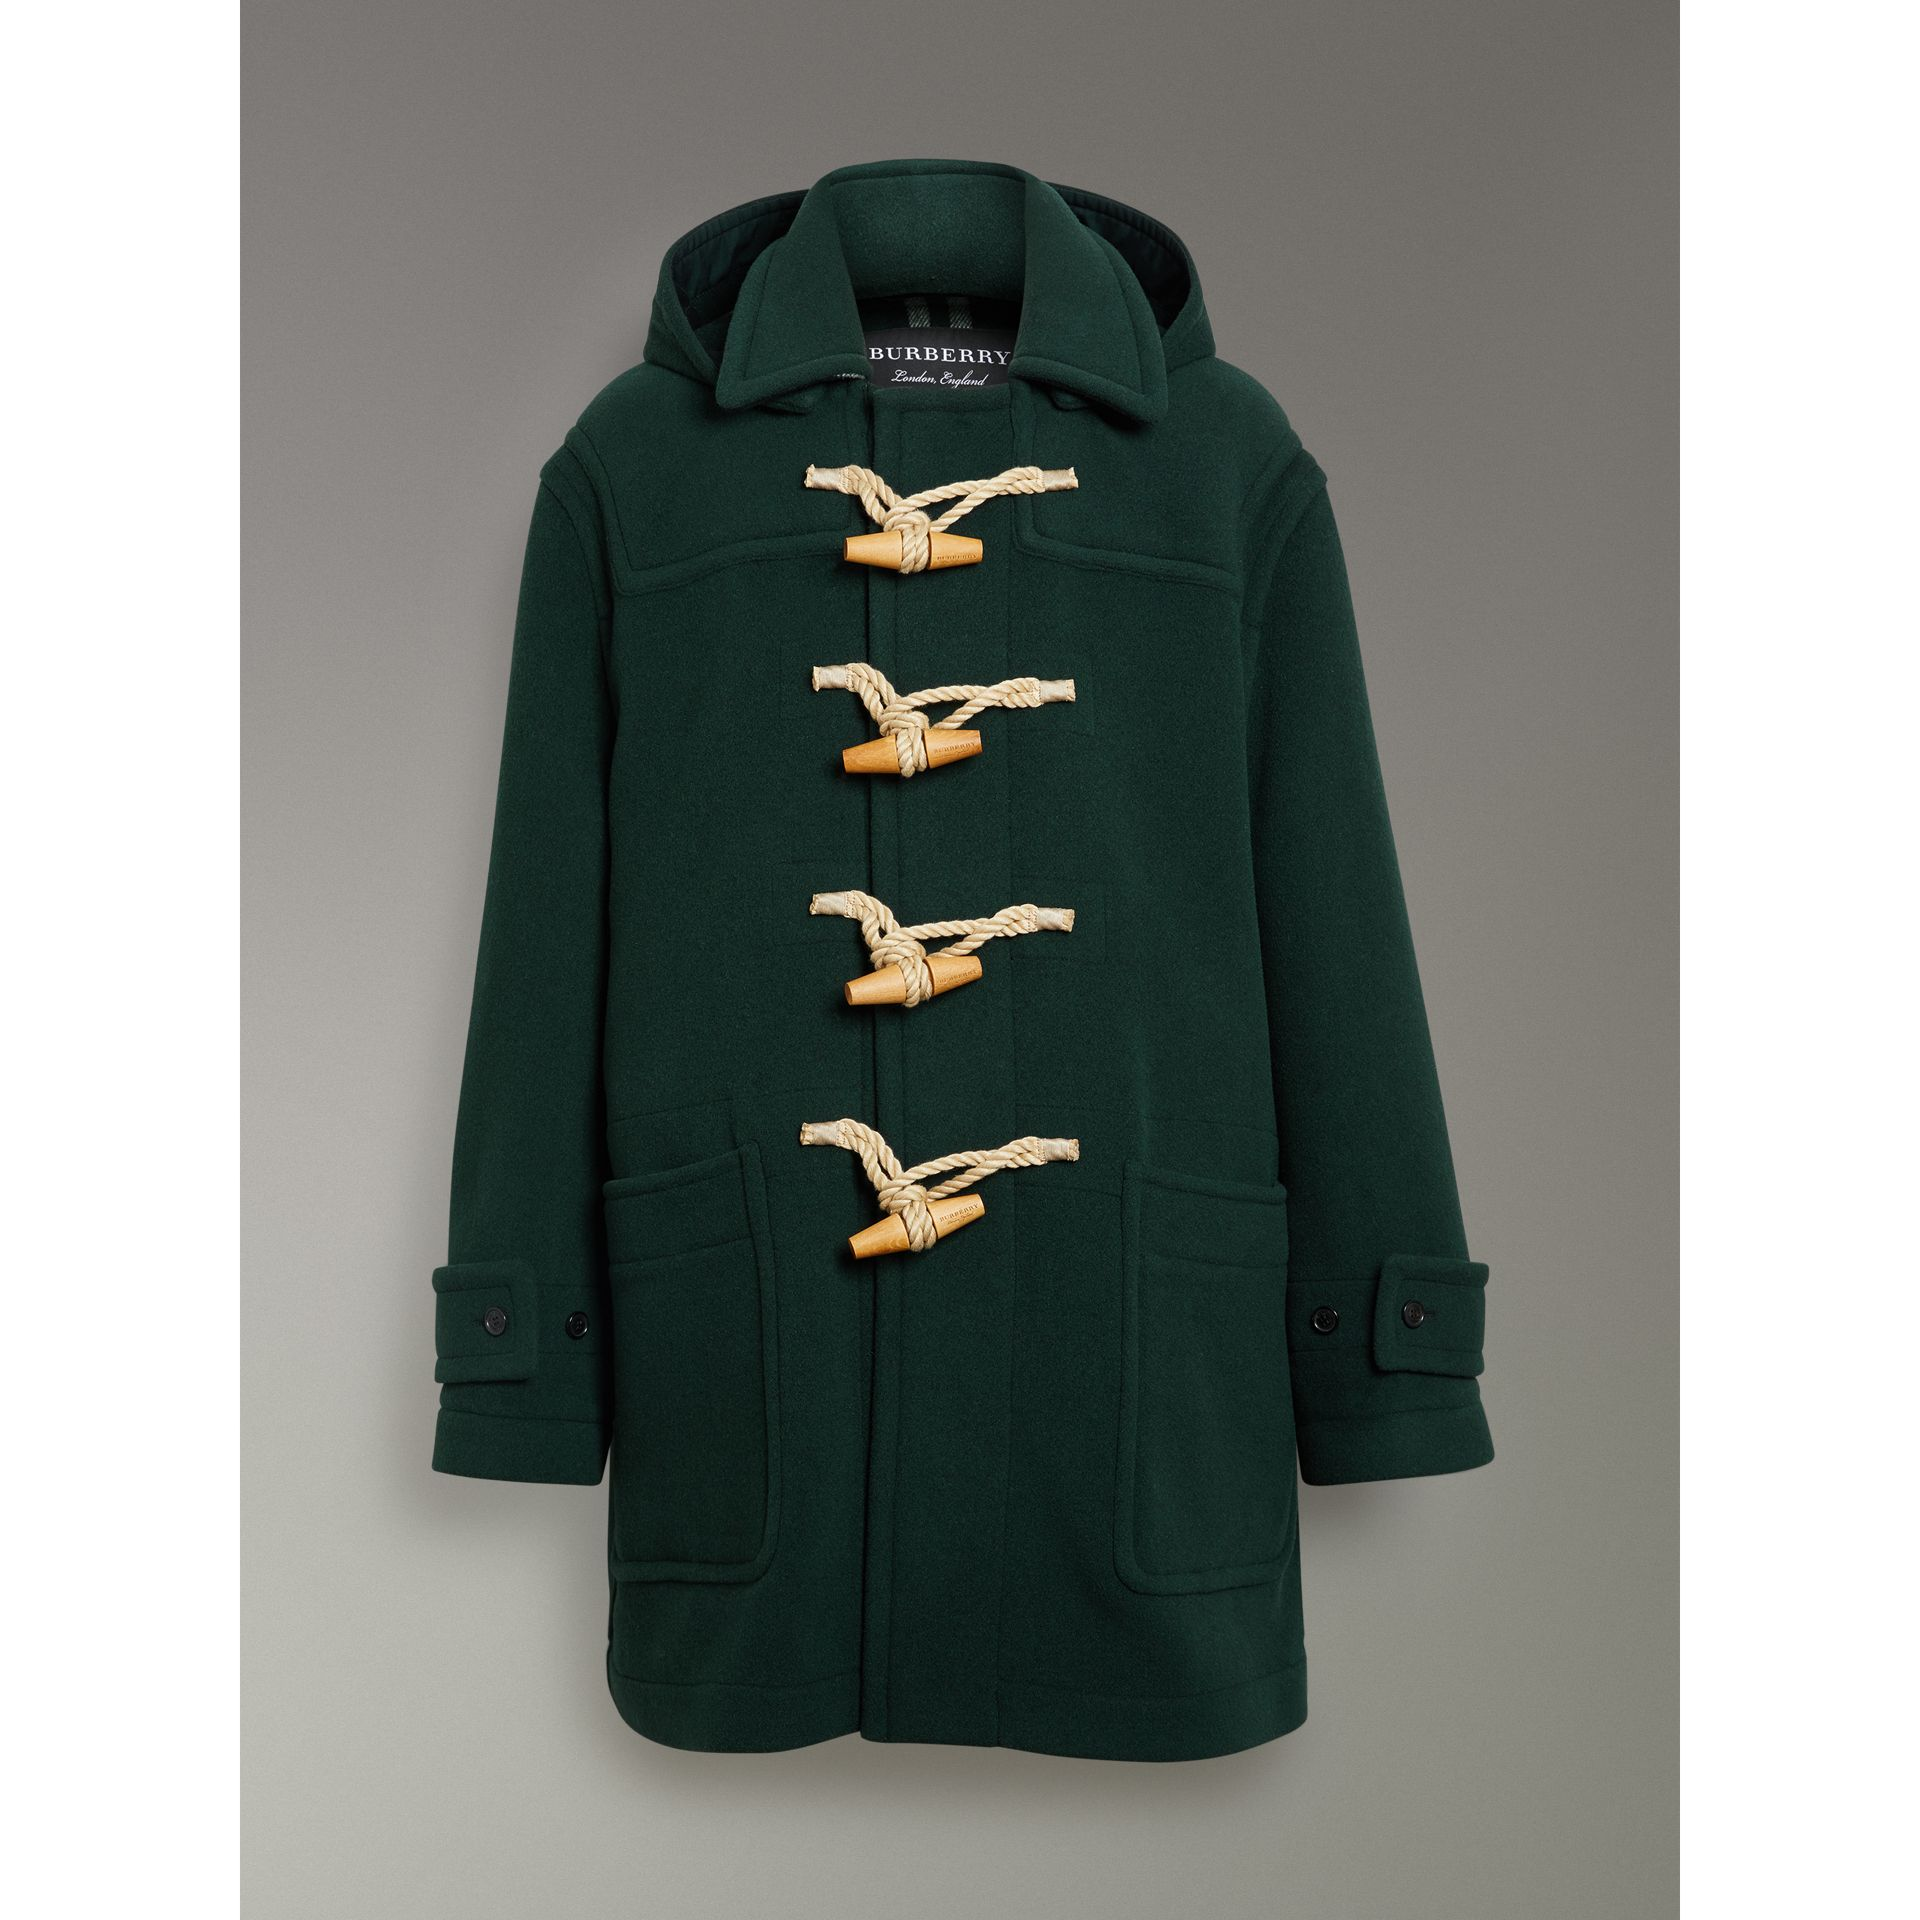 Gosha x Burberry Oversized Duffle Coat in Dark Forest Green | Burberry Australia - gallery image 3